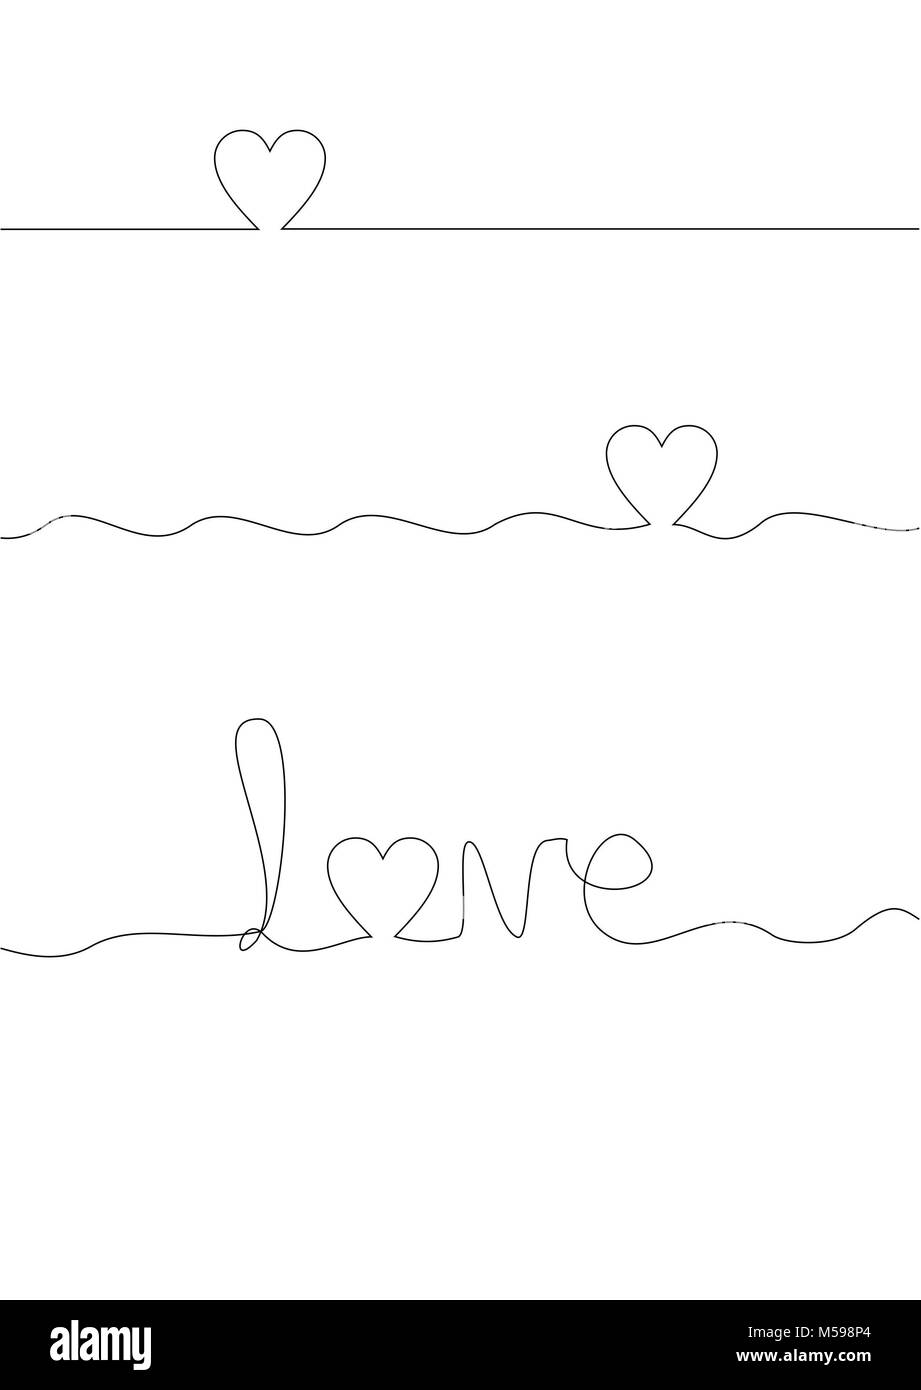 Continuous line drawing of hearts and love wording - Stock Image